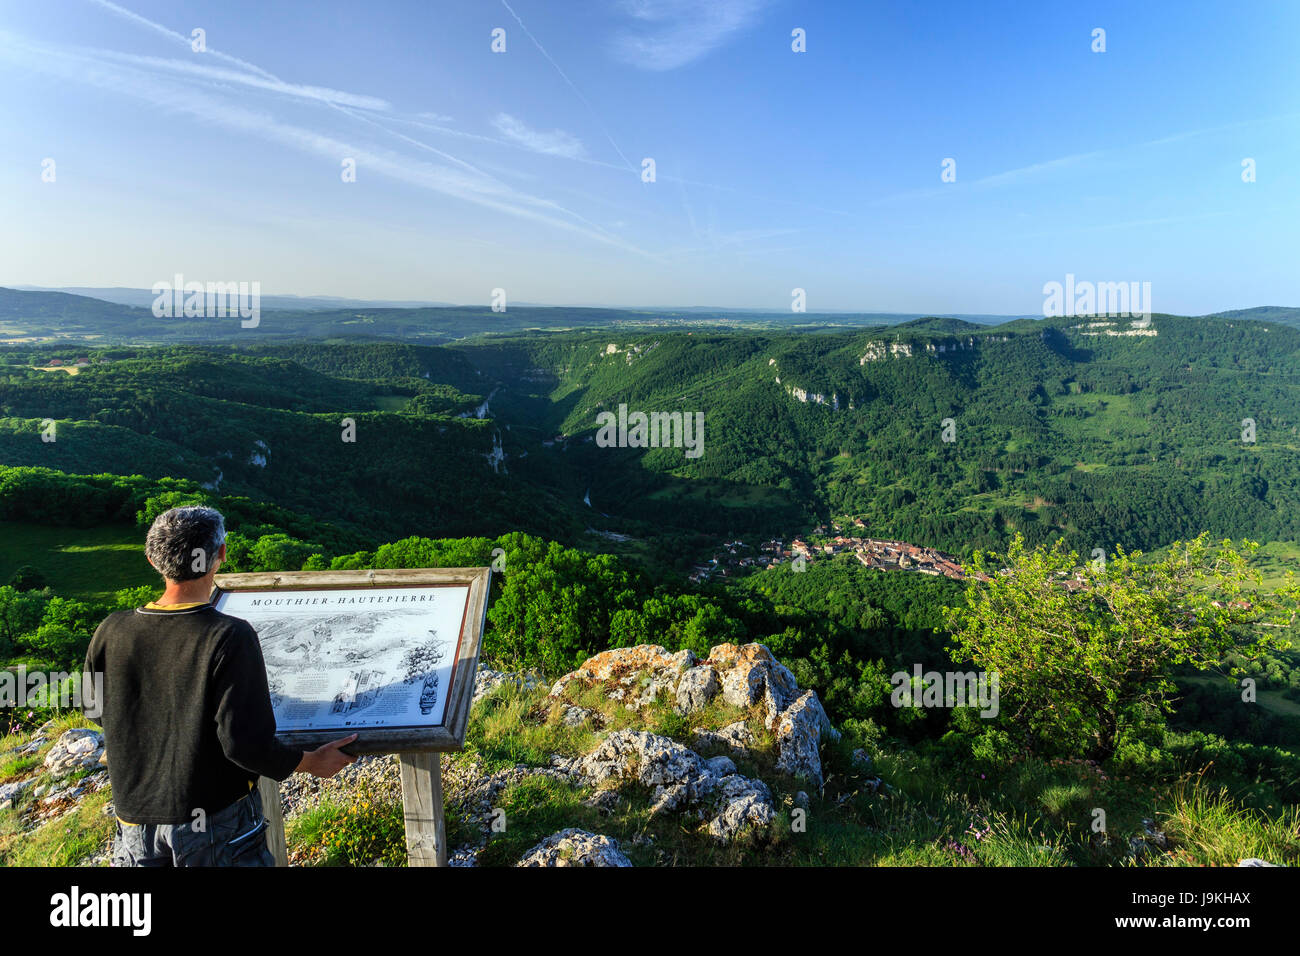 France, Doubs, Mouthier Haute Pierre, Roche de Hautepierre lookout, view on the Loue valley and the village of Mouthier - Stock Image